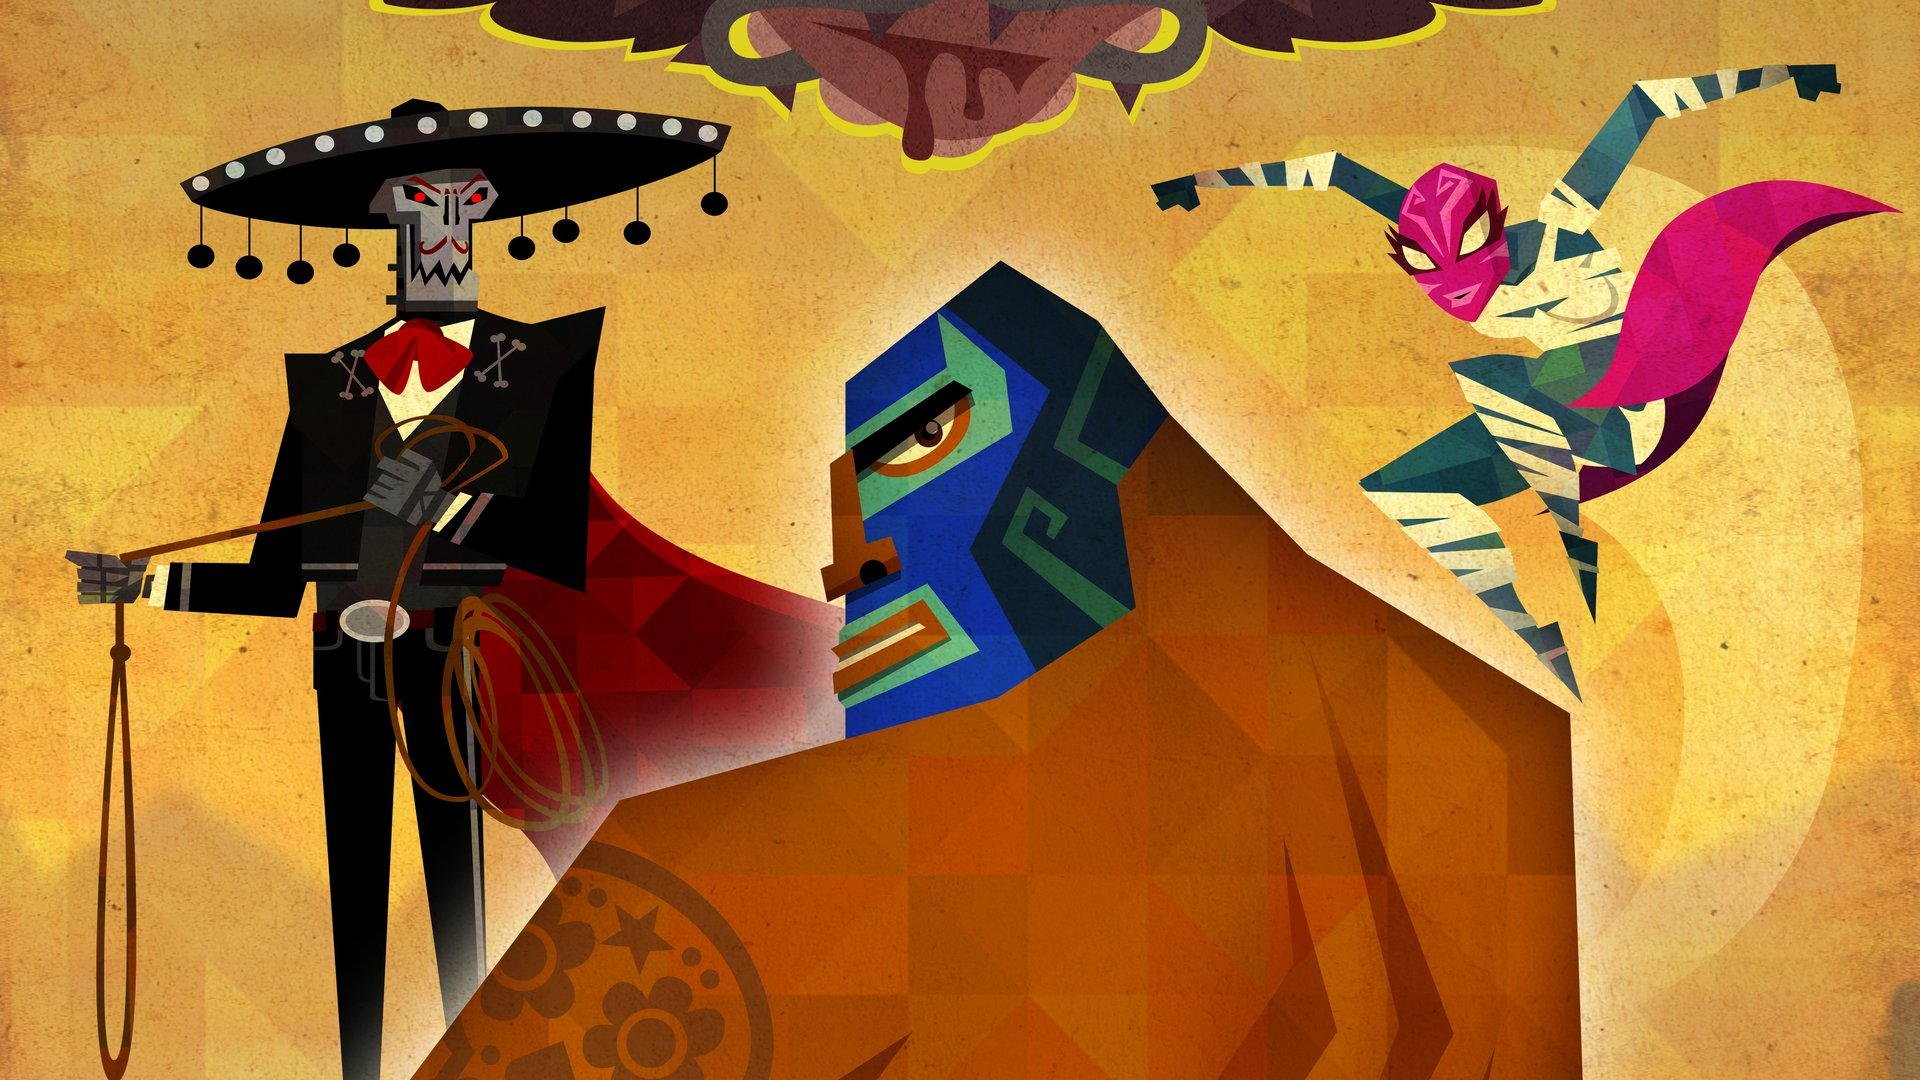 Guacamelee Super Turbo Championship Edition release date august 21